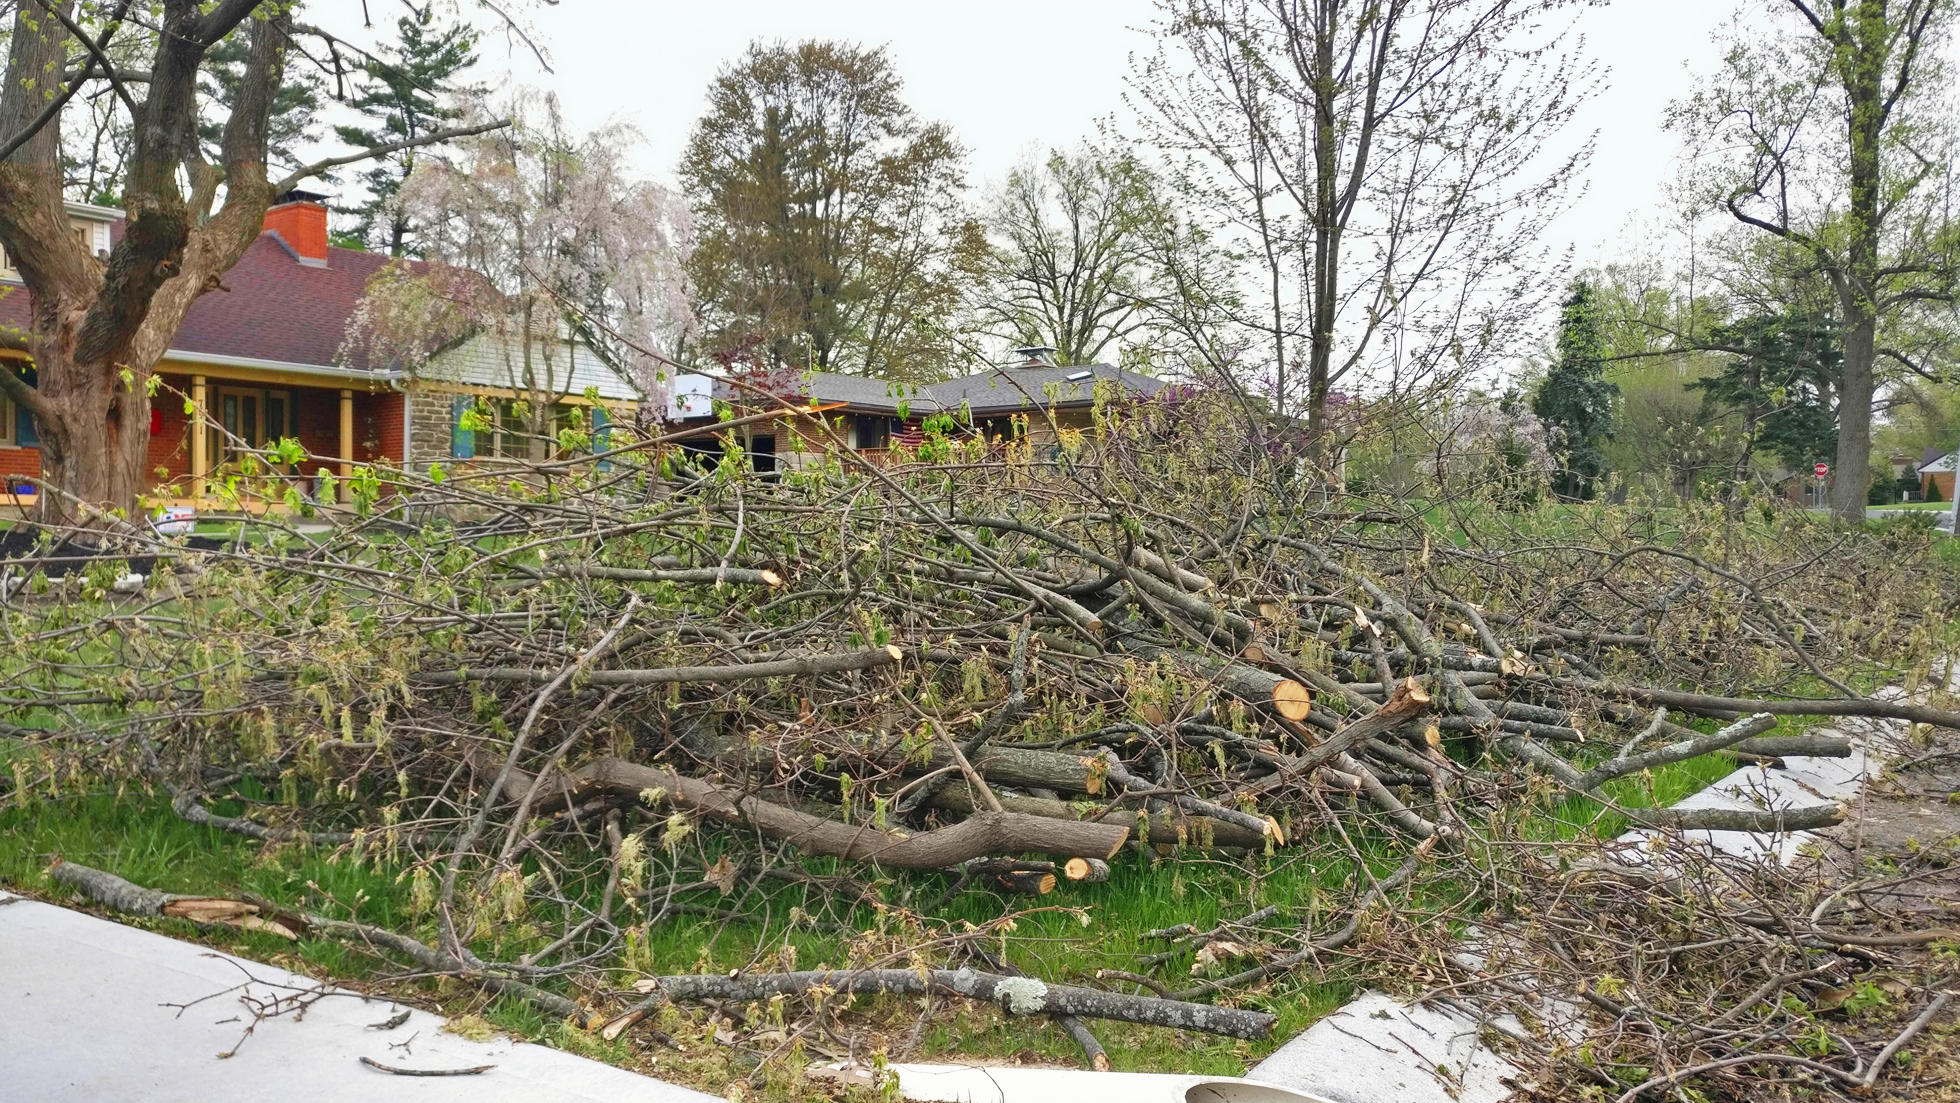 Pruned and damaged branches piled next to the street